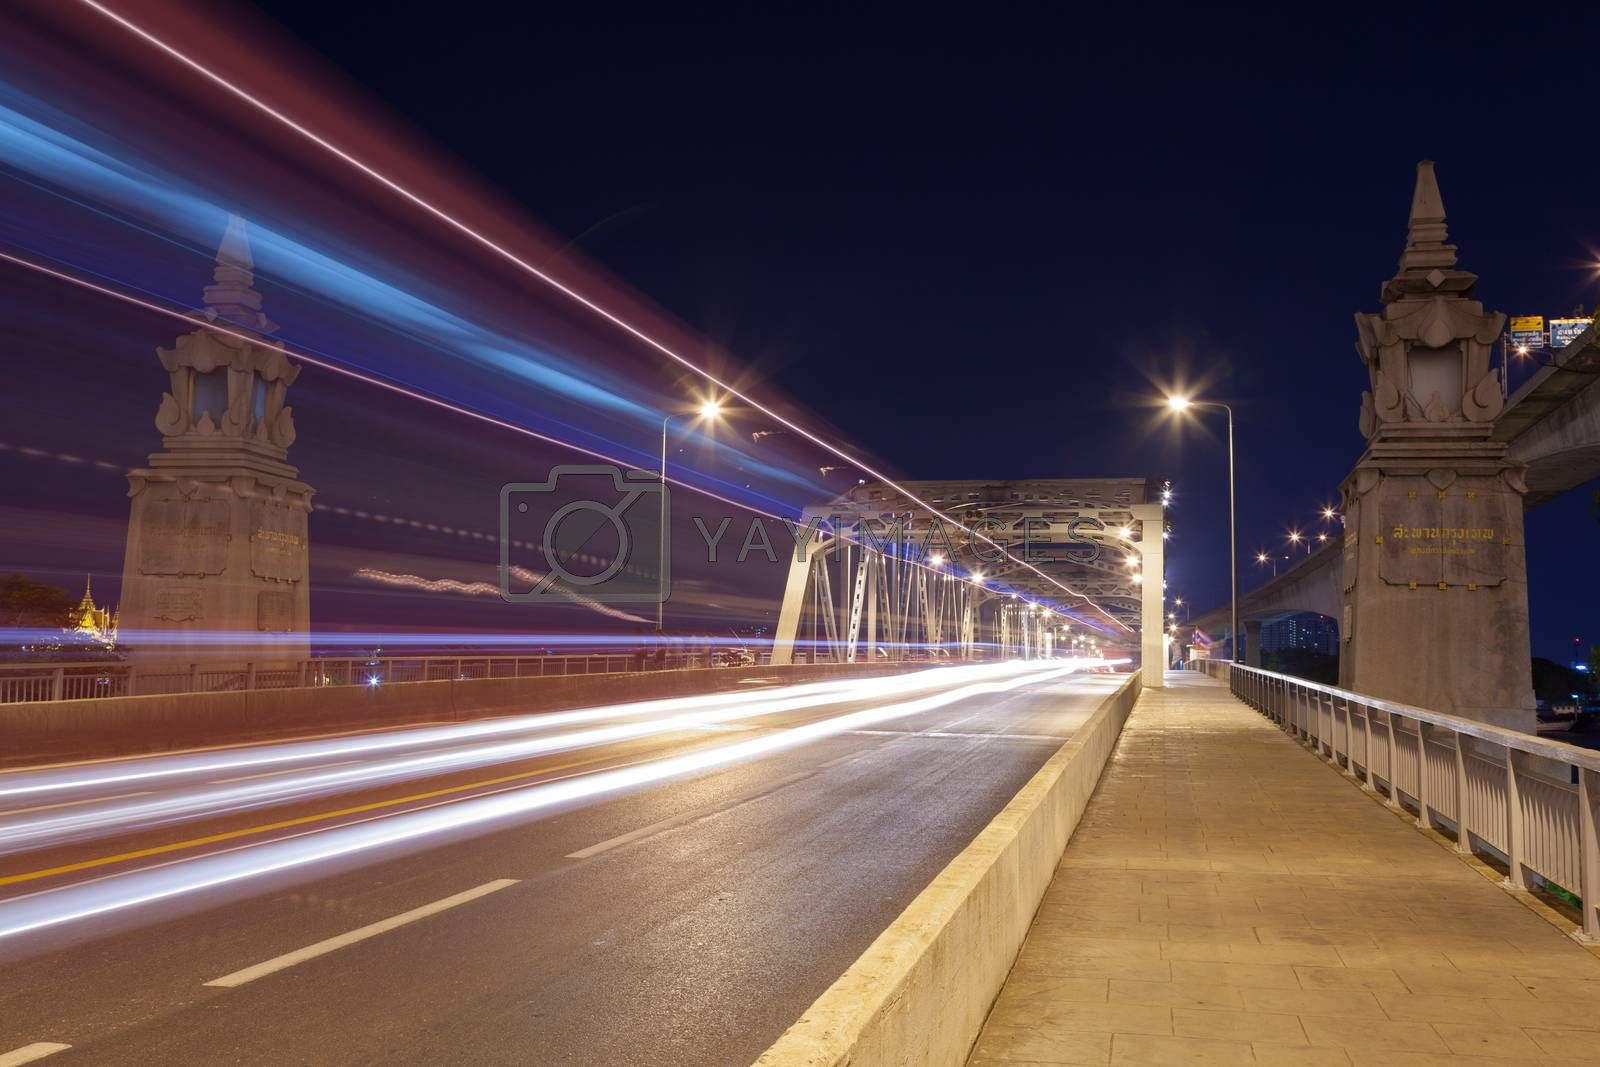 Traffic at night. The light from cars traveling across the bridge at night.